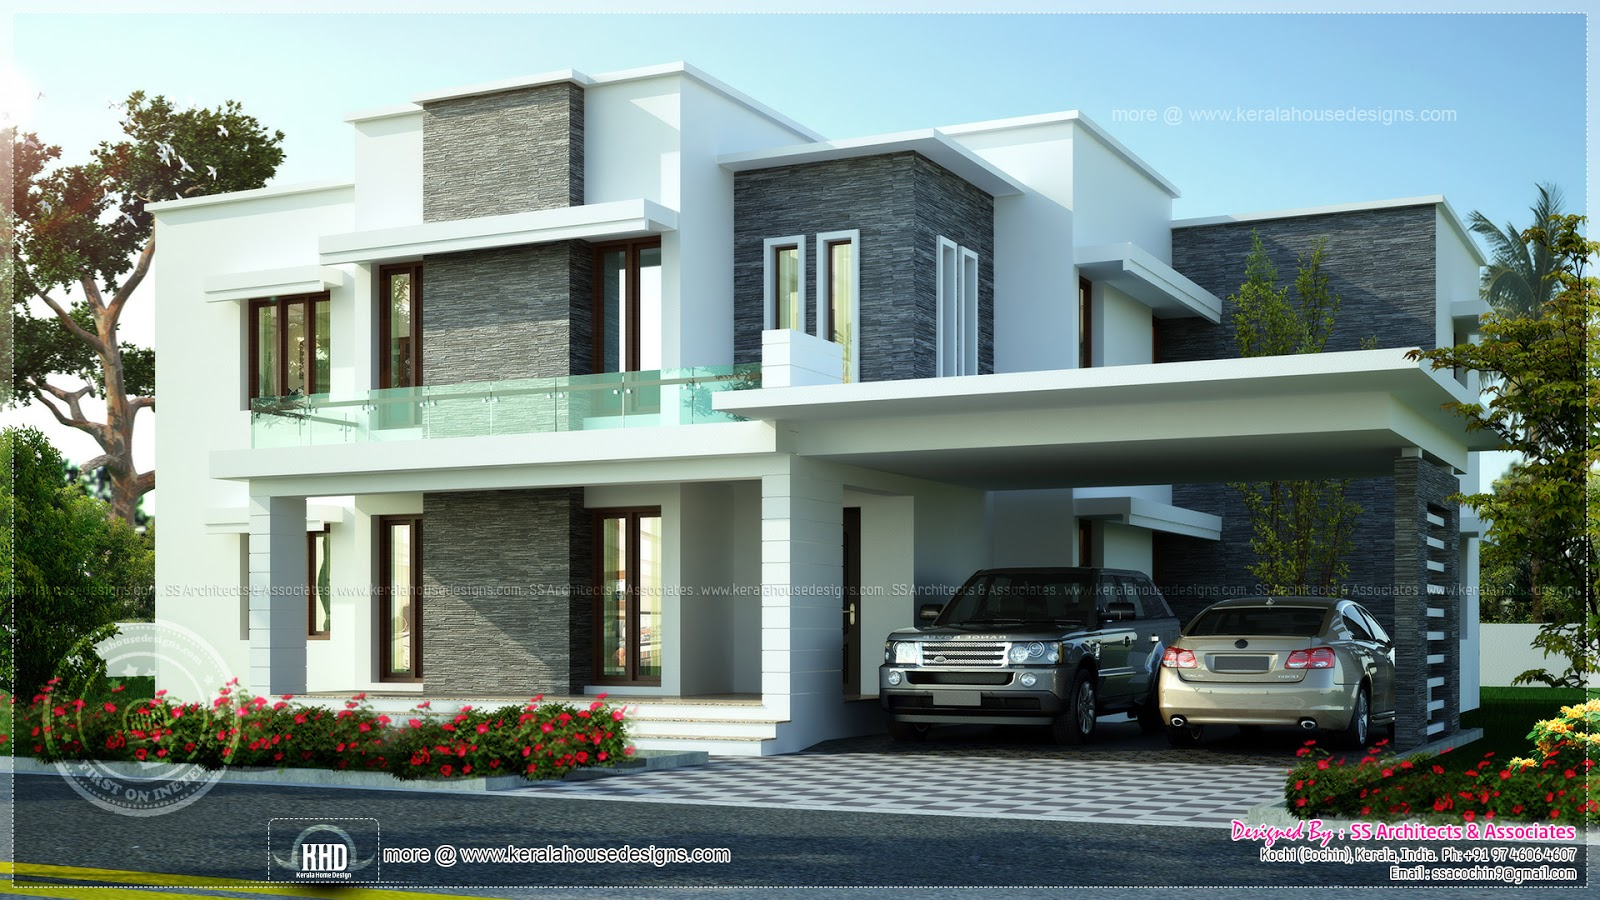 House Jpg 1600x1067 Residence Elevations D Rendering Services L Of Modern Indian